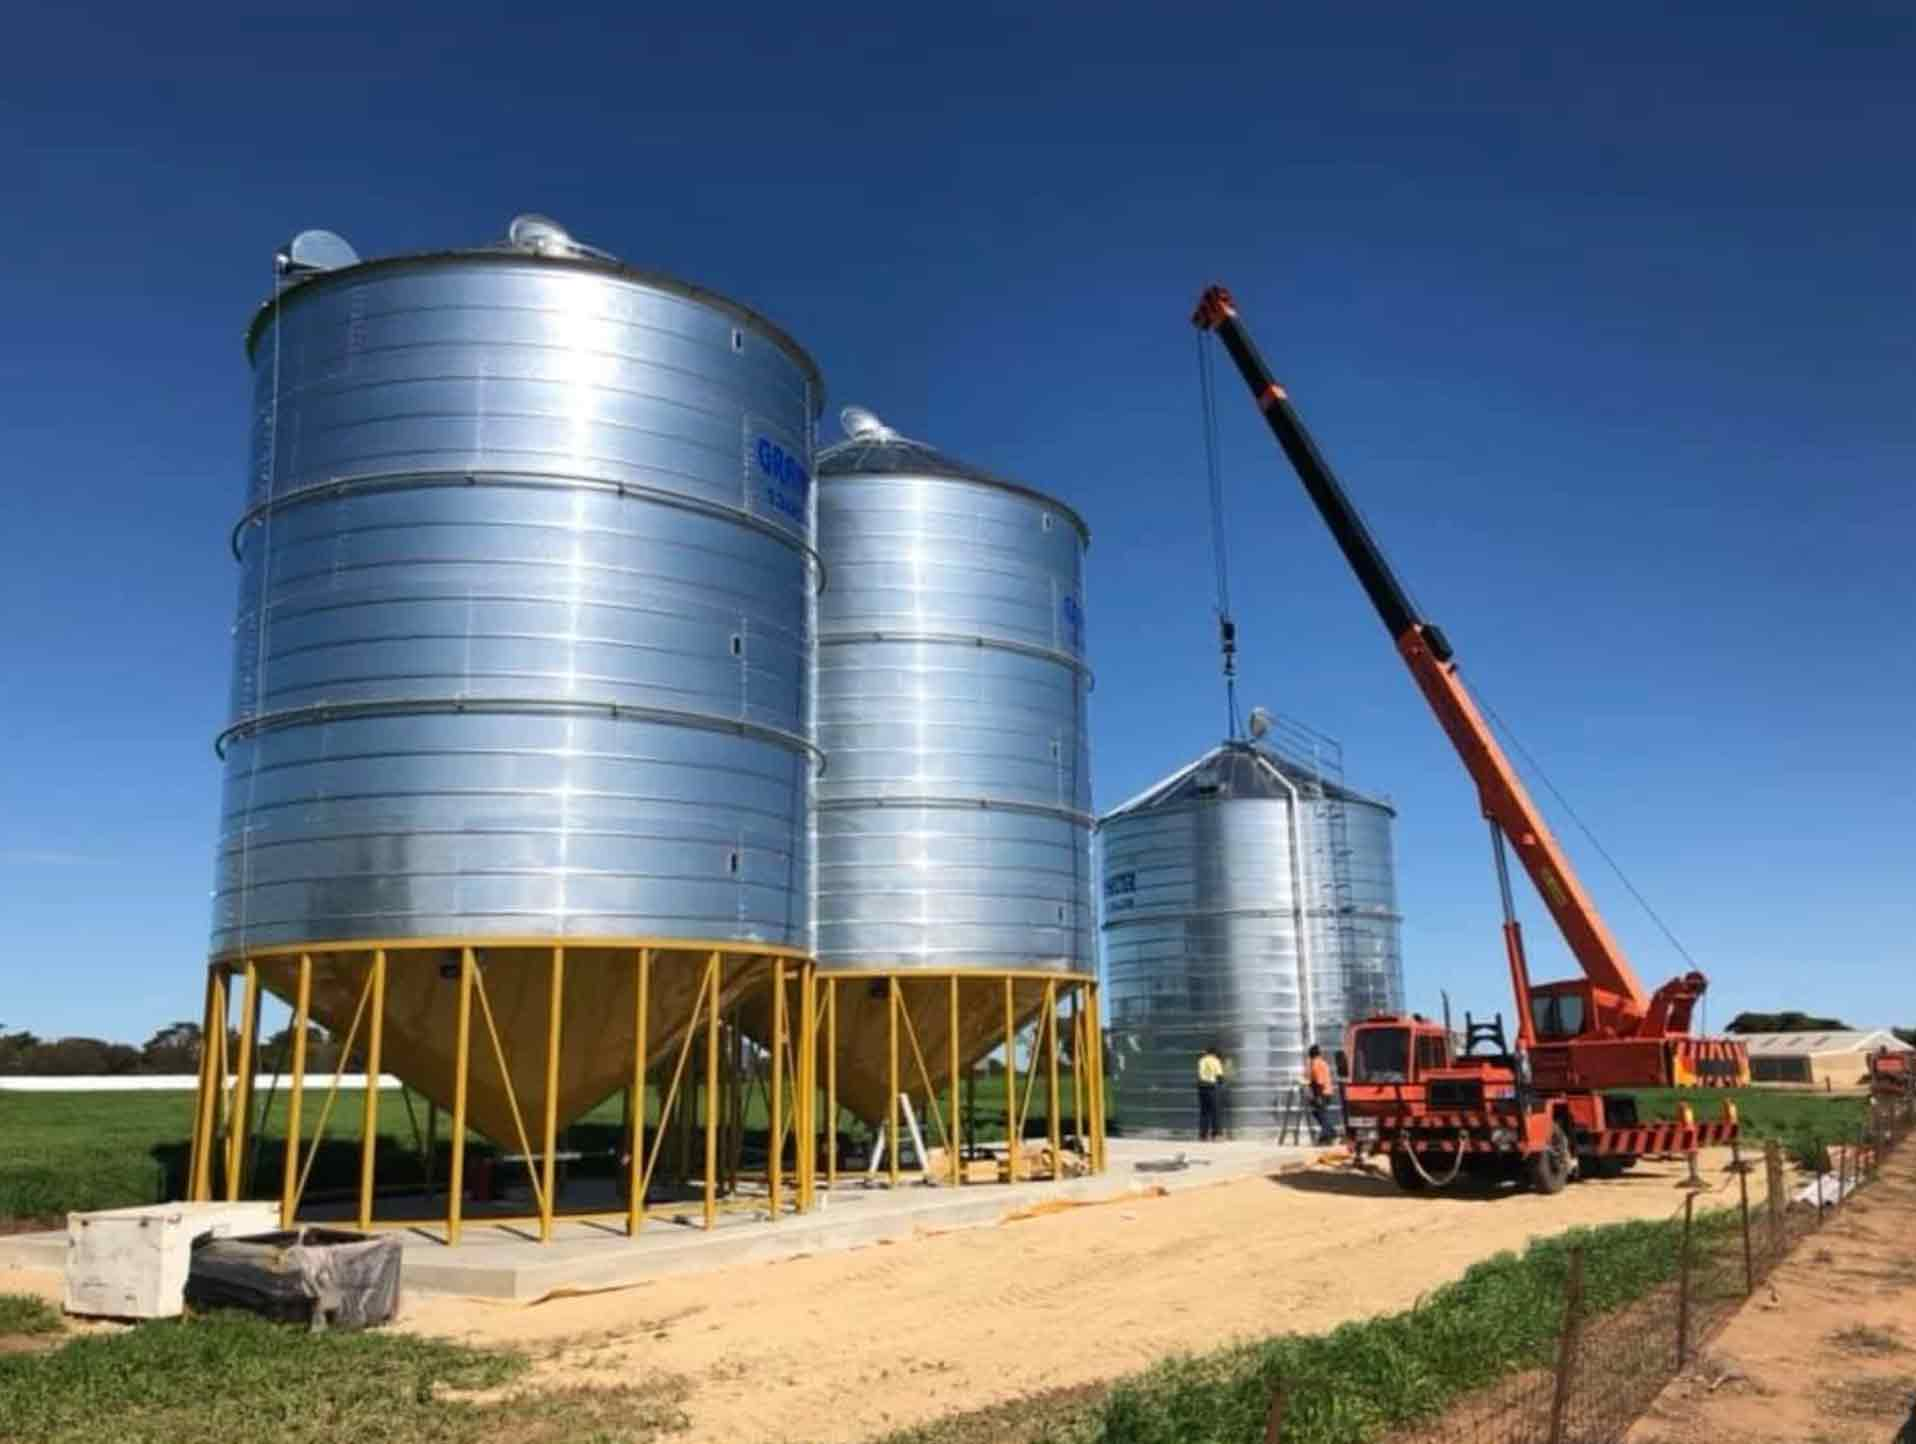 5 x GrainMaster Silos for a client in Weetulta